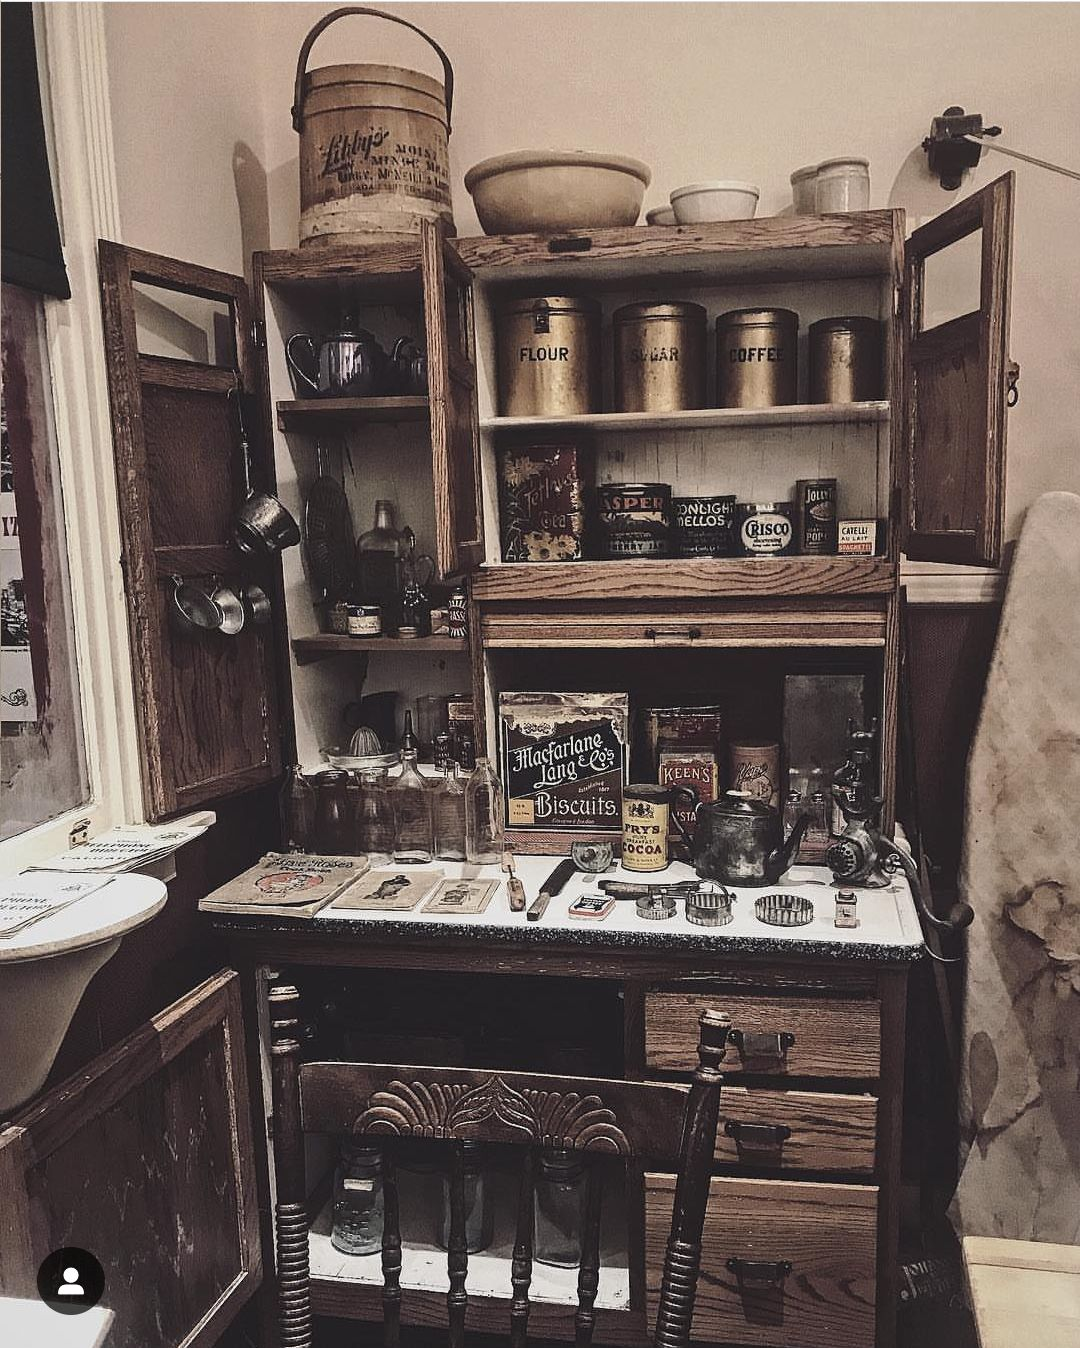 We Re In Love With This Moody Shot Of Autumn Zenith S Hoosier Stocked Full Of Vintage Canisters And Kitchen Gadgets Hoosier Cabinet Cabinet Vintage Canisters